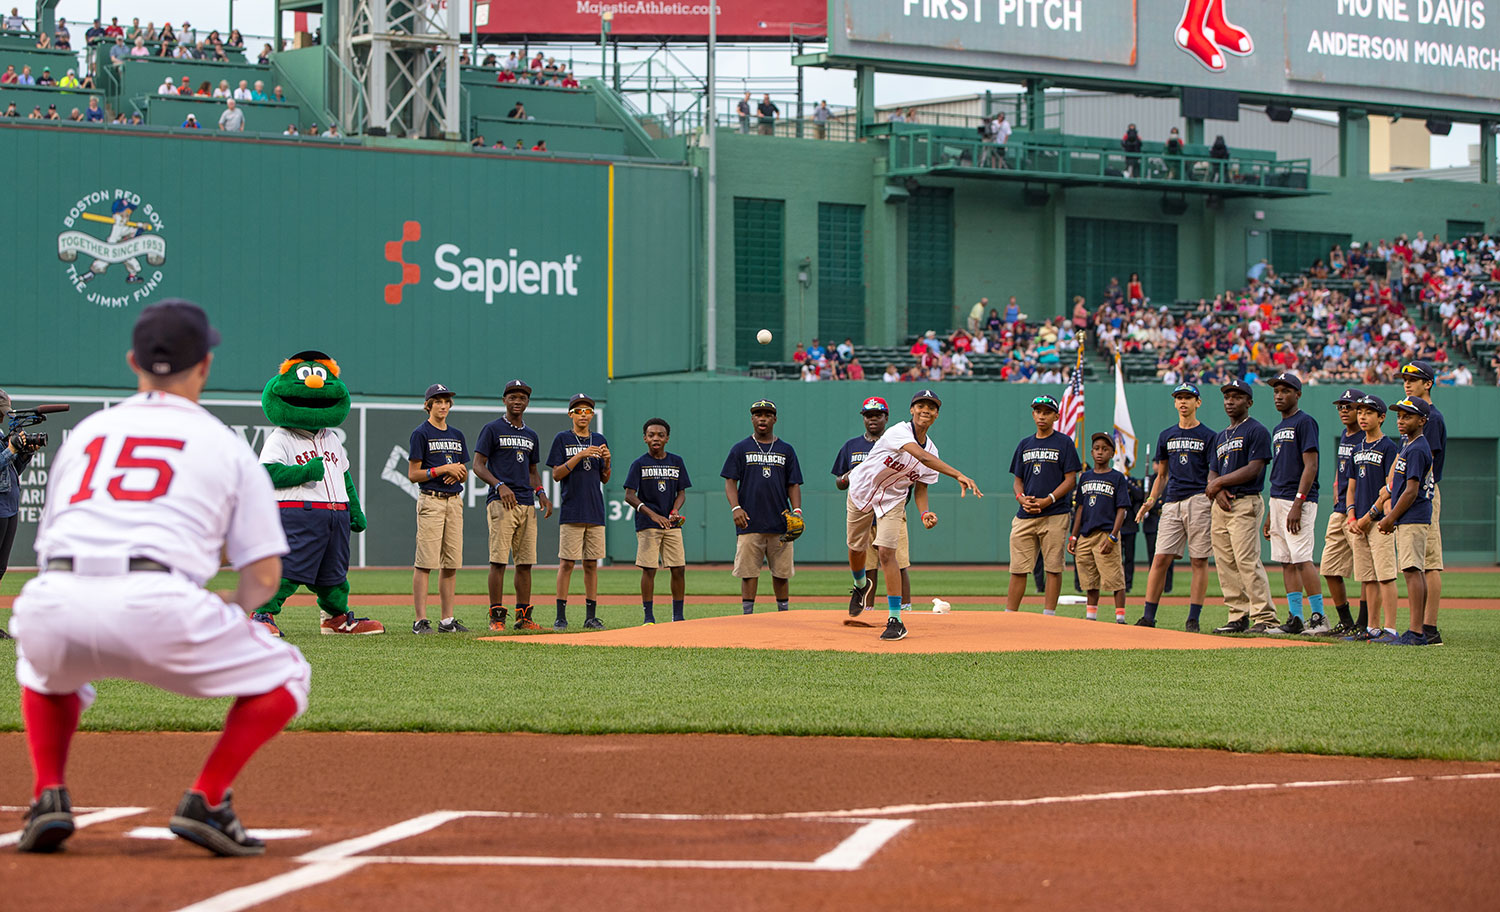 Day 21. Fenway Park